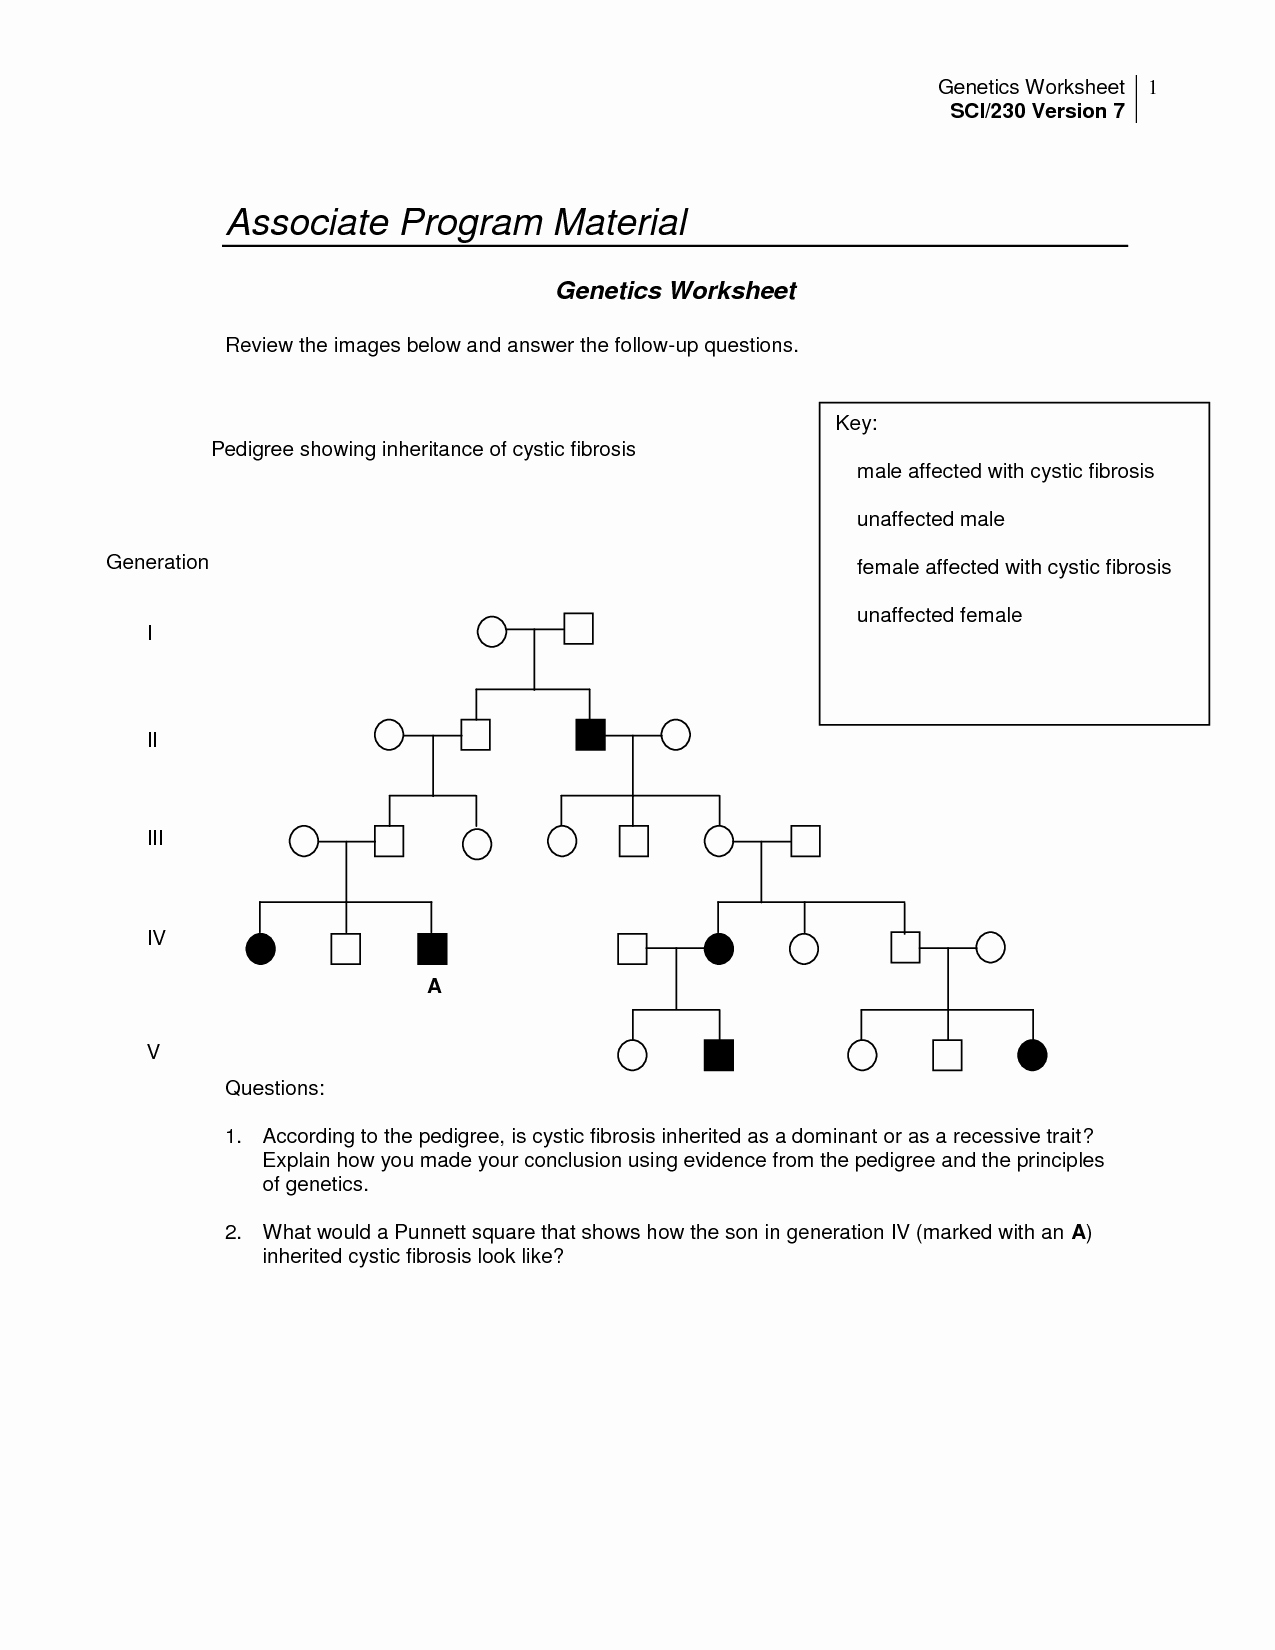 Genetics Pedigree Worksheet Answers Awesome 14 Best Of Pedigree Worksheet with Answer Key